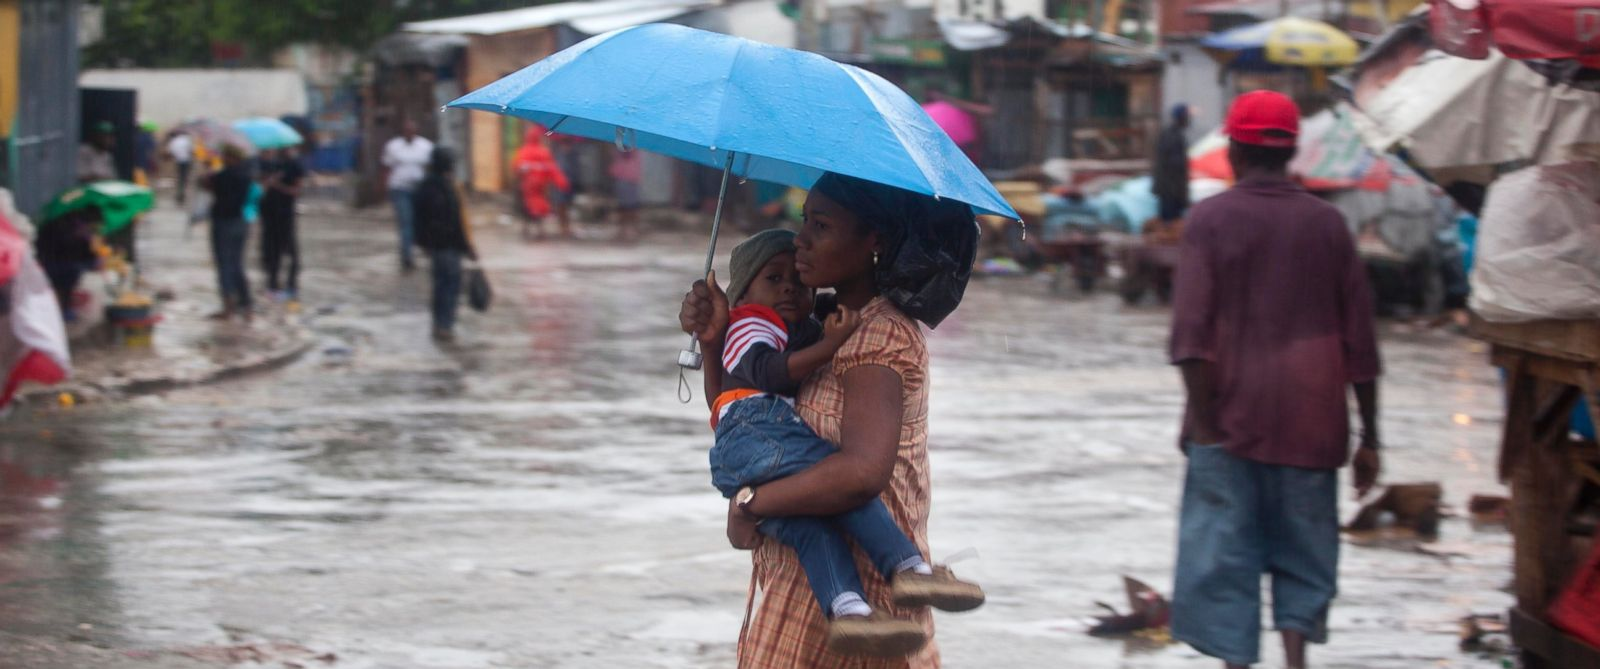 PHOTO: A woman carrying a child walks in the rain triggered by Hurricane Matthew in Port-au-Prince, Haiti, Oct. 4, 2016.